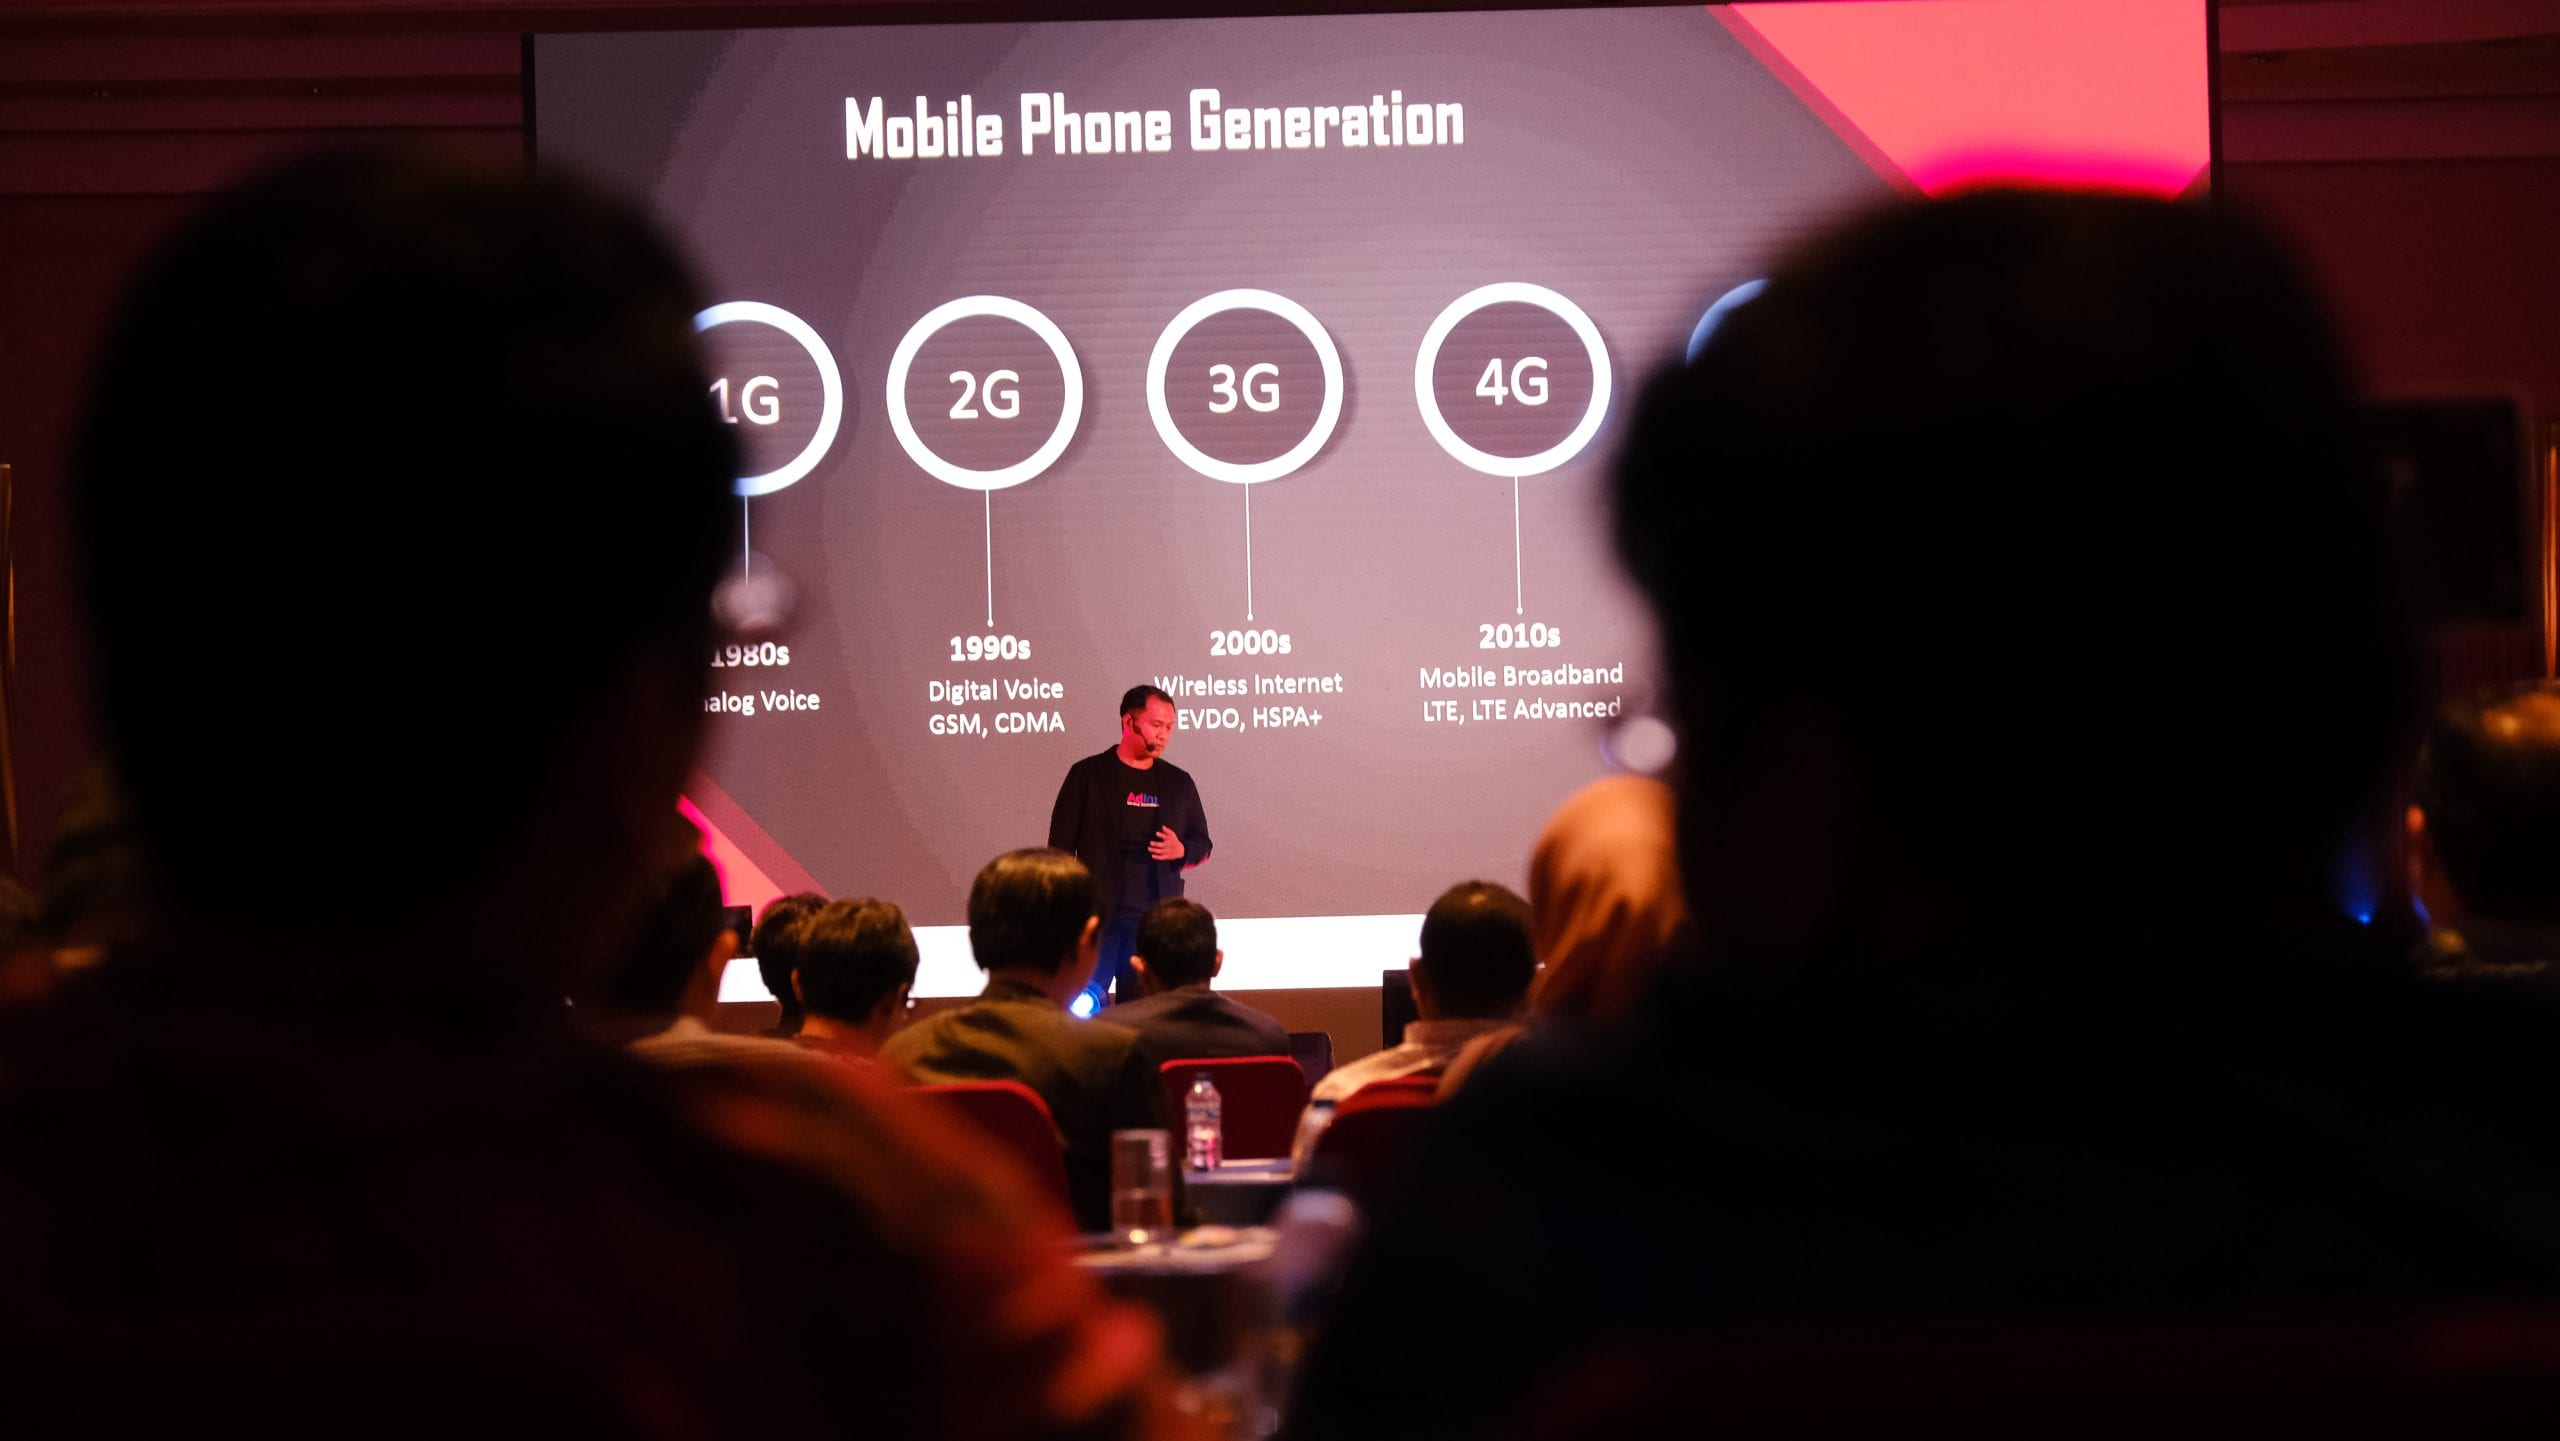 dampak teknologi, Dampak Teknologi 5G Pada Mobile Customer Behavior, Advance Innovations